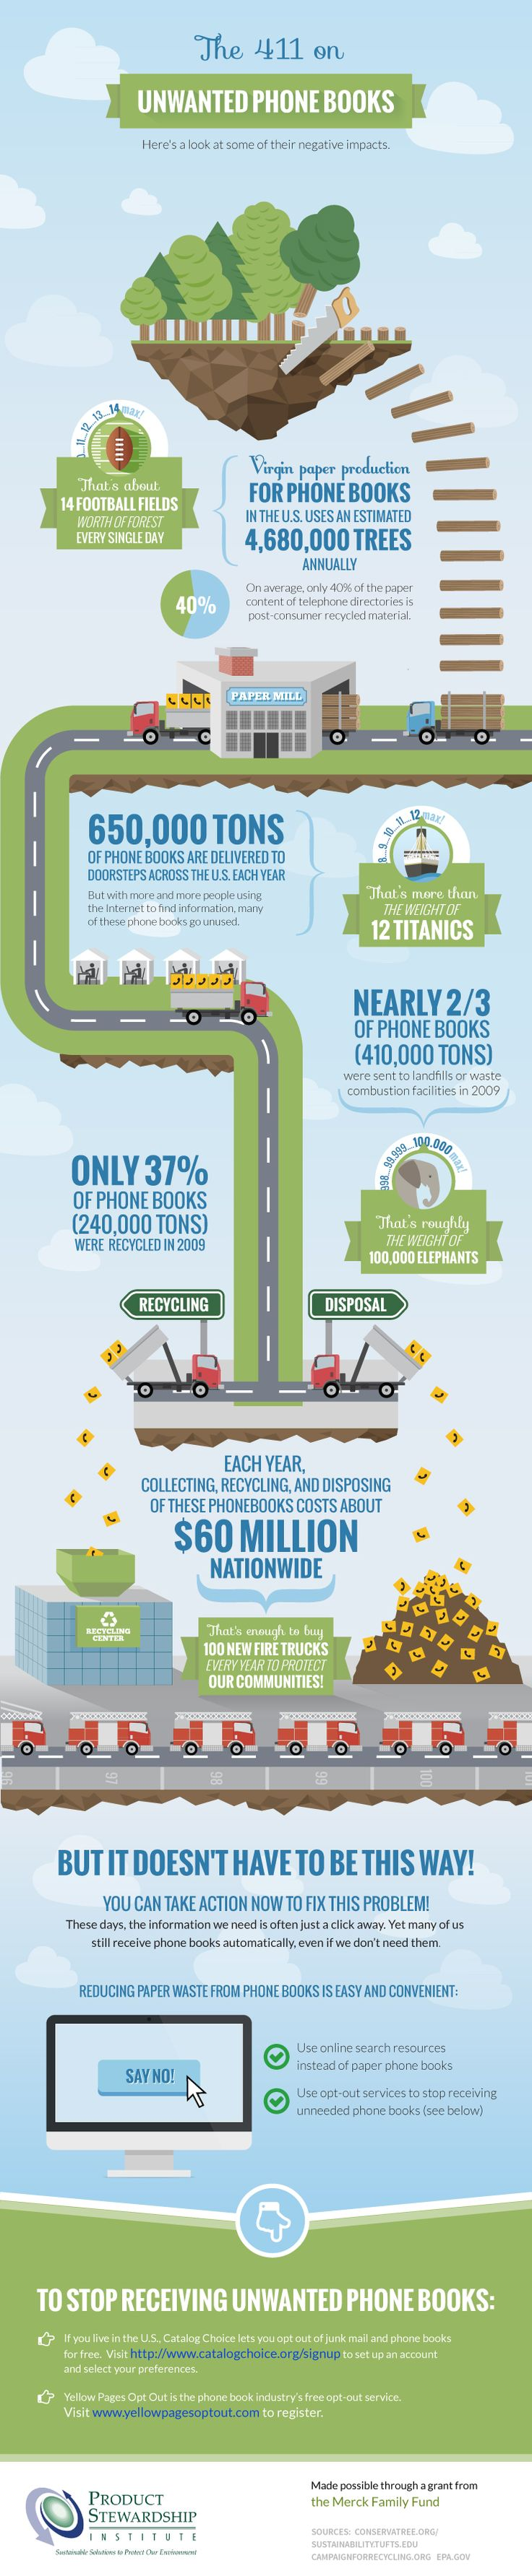 Infographic on unwanted phone books wanted for product stewardship institute infographic design 55 by mh